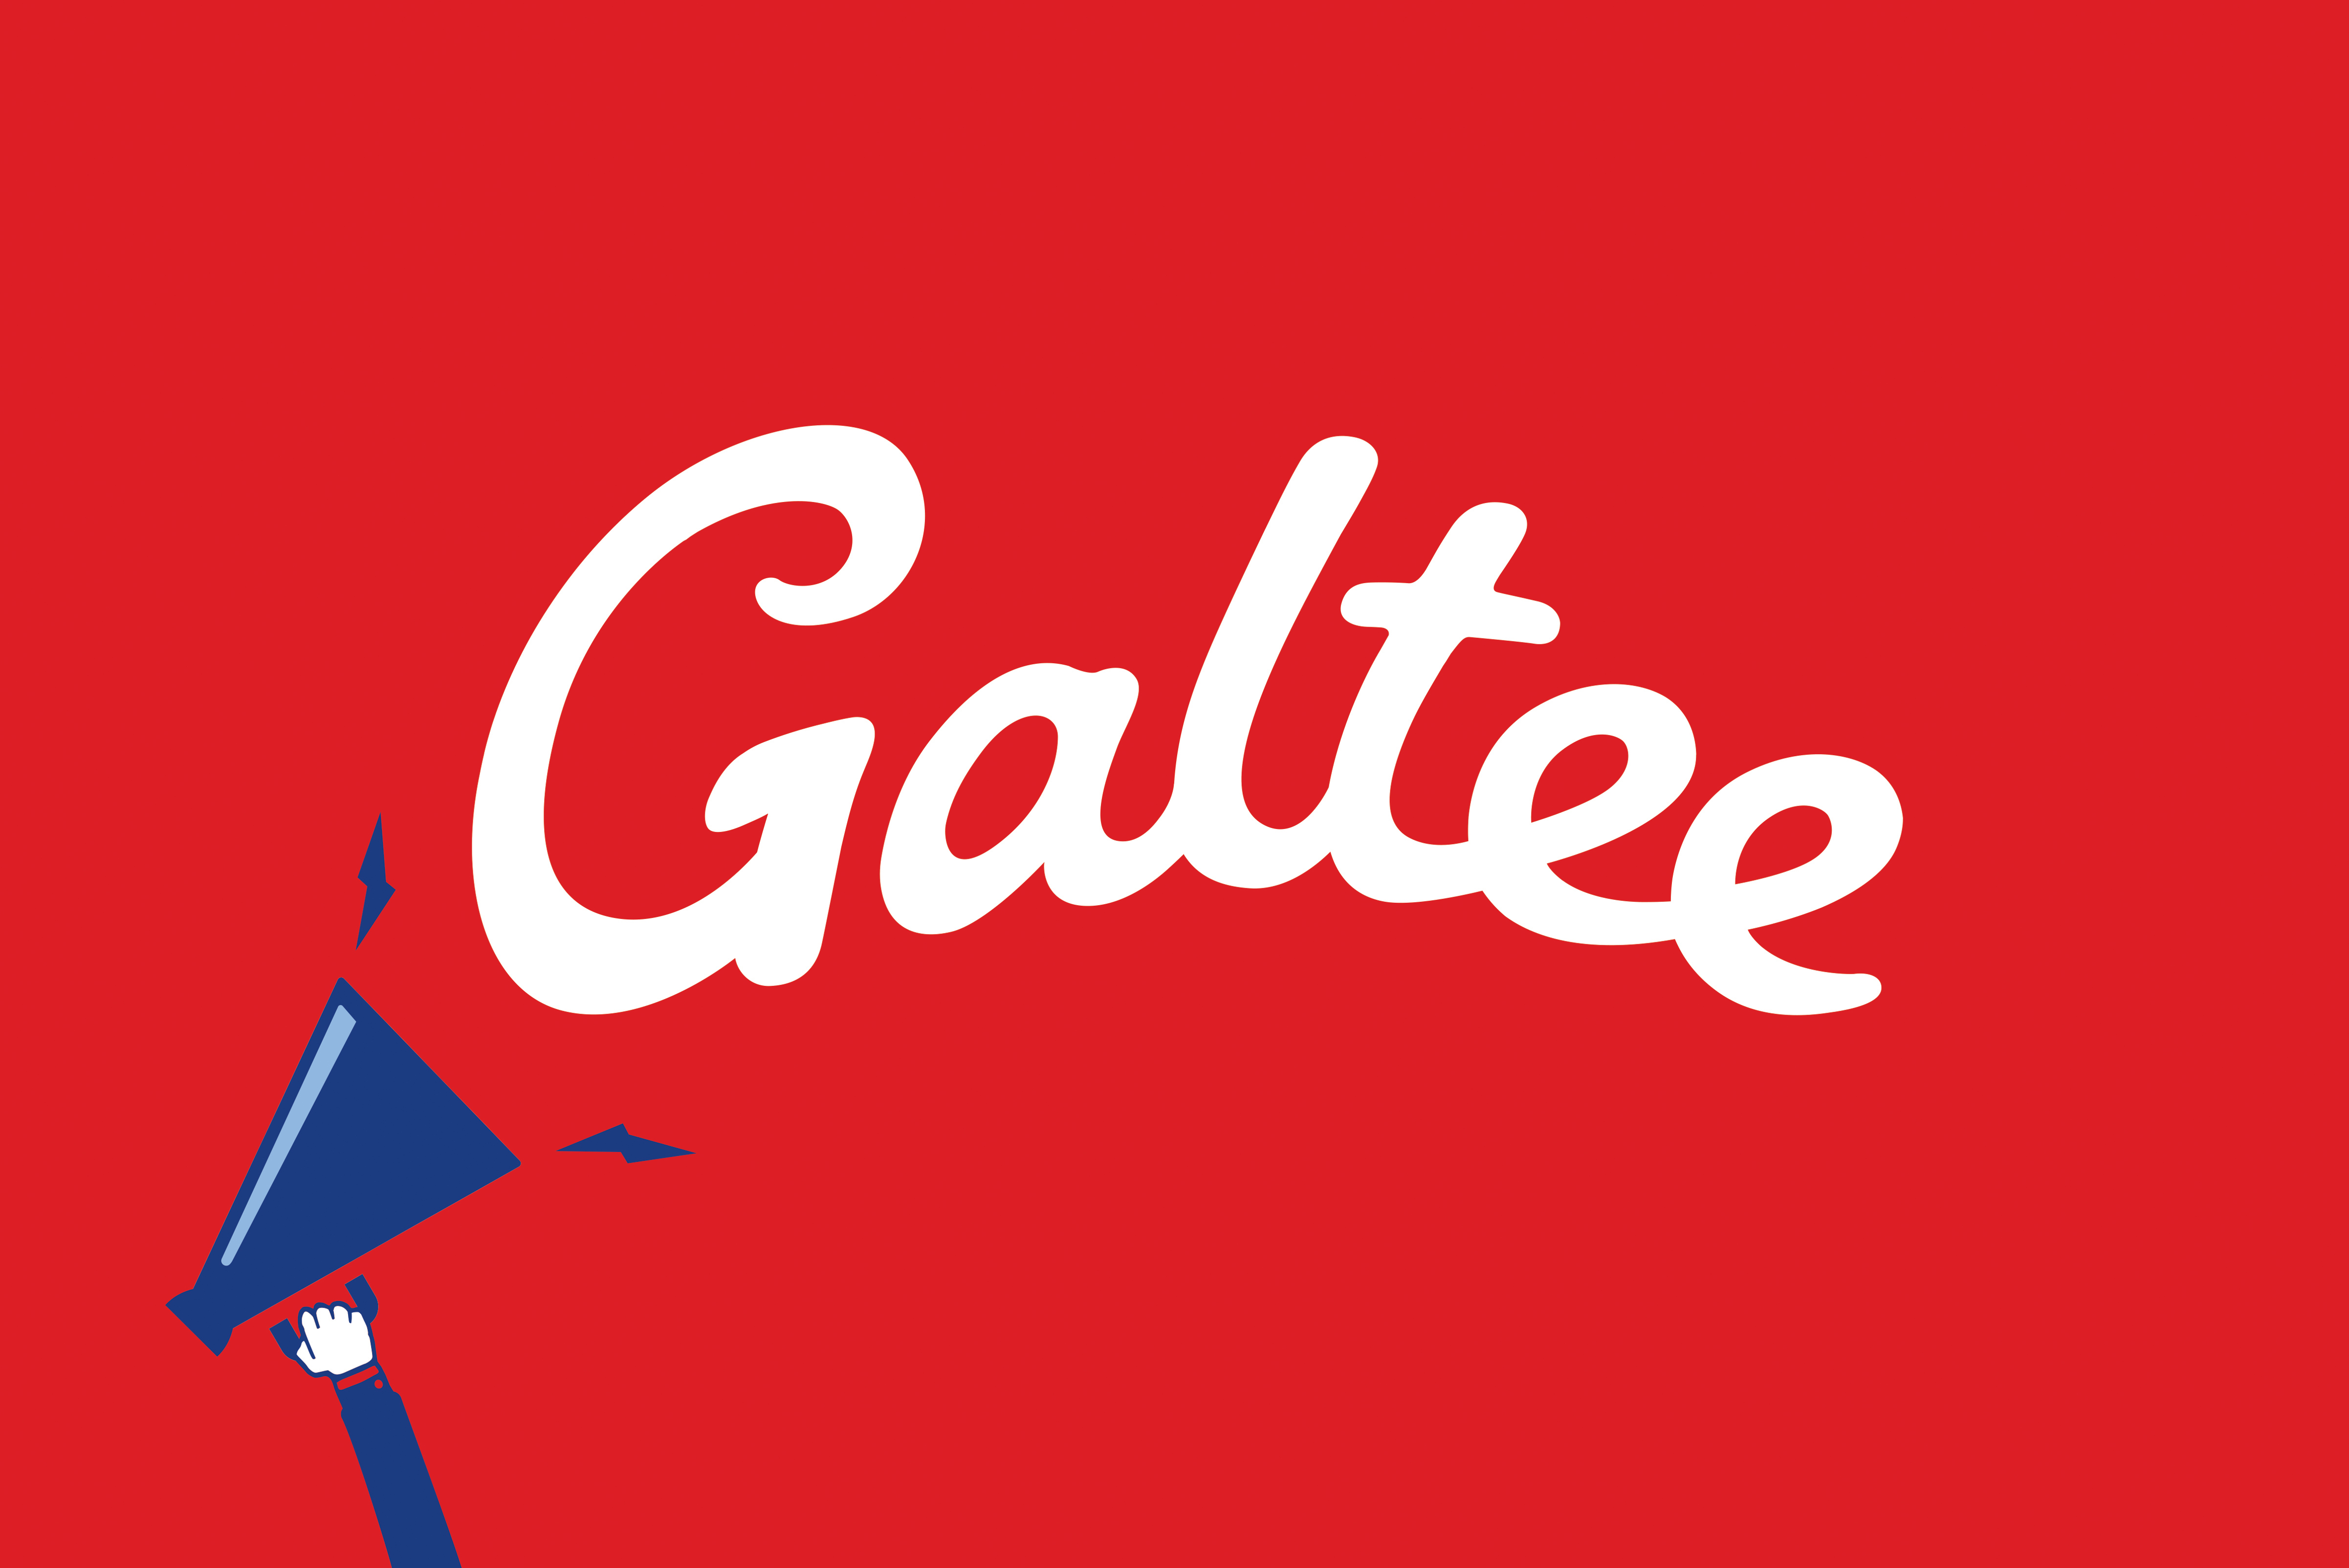 Cover image: Galtee